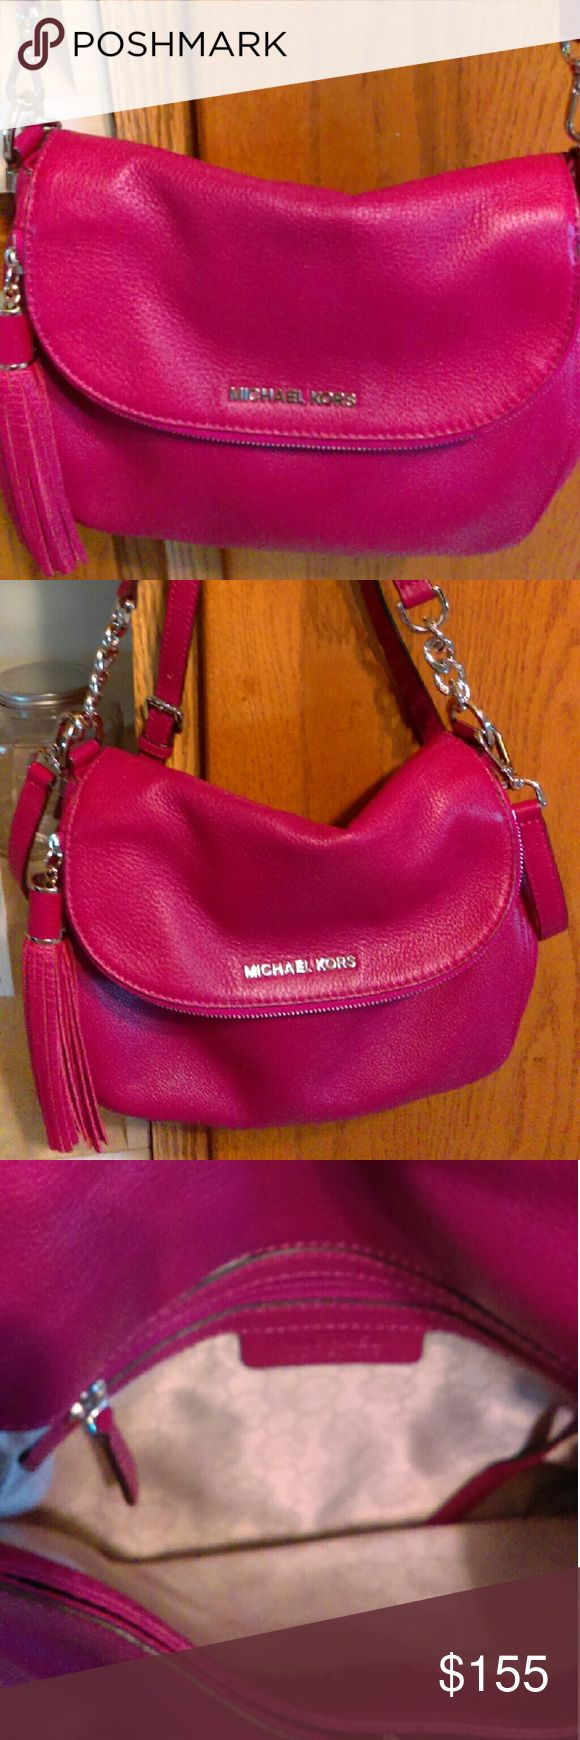 Michael Kors Raspberry Bedford bag Price firm!!Gorgeous Michael Kors raspberry Bedford bag in excellent condition. The color is a little deeper than pics. These aren't easy to find at this price especially. There's a small bend on short strap where was hung. There's some non noticeable scratches on silver hardware. It's shoulder with detachable crossbody strap. Higher tv Michael Kors Bags Crossbody Bags